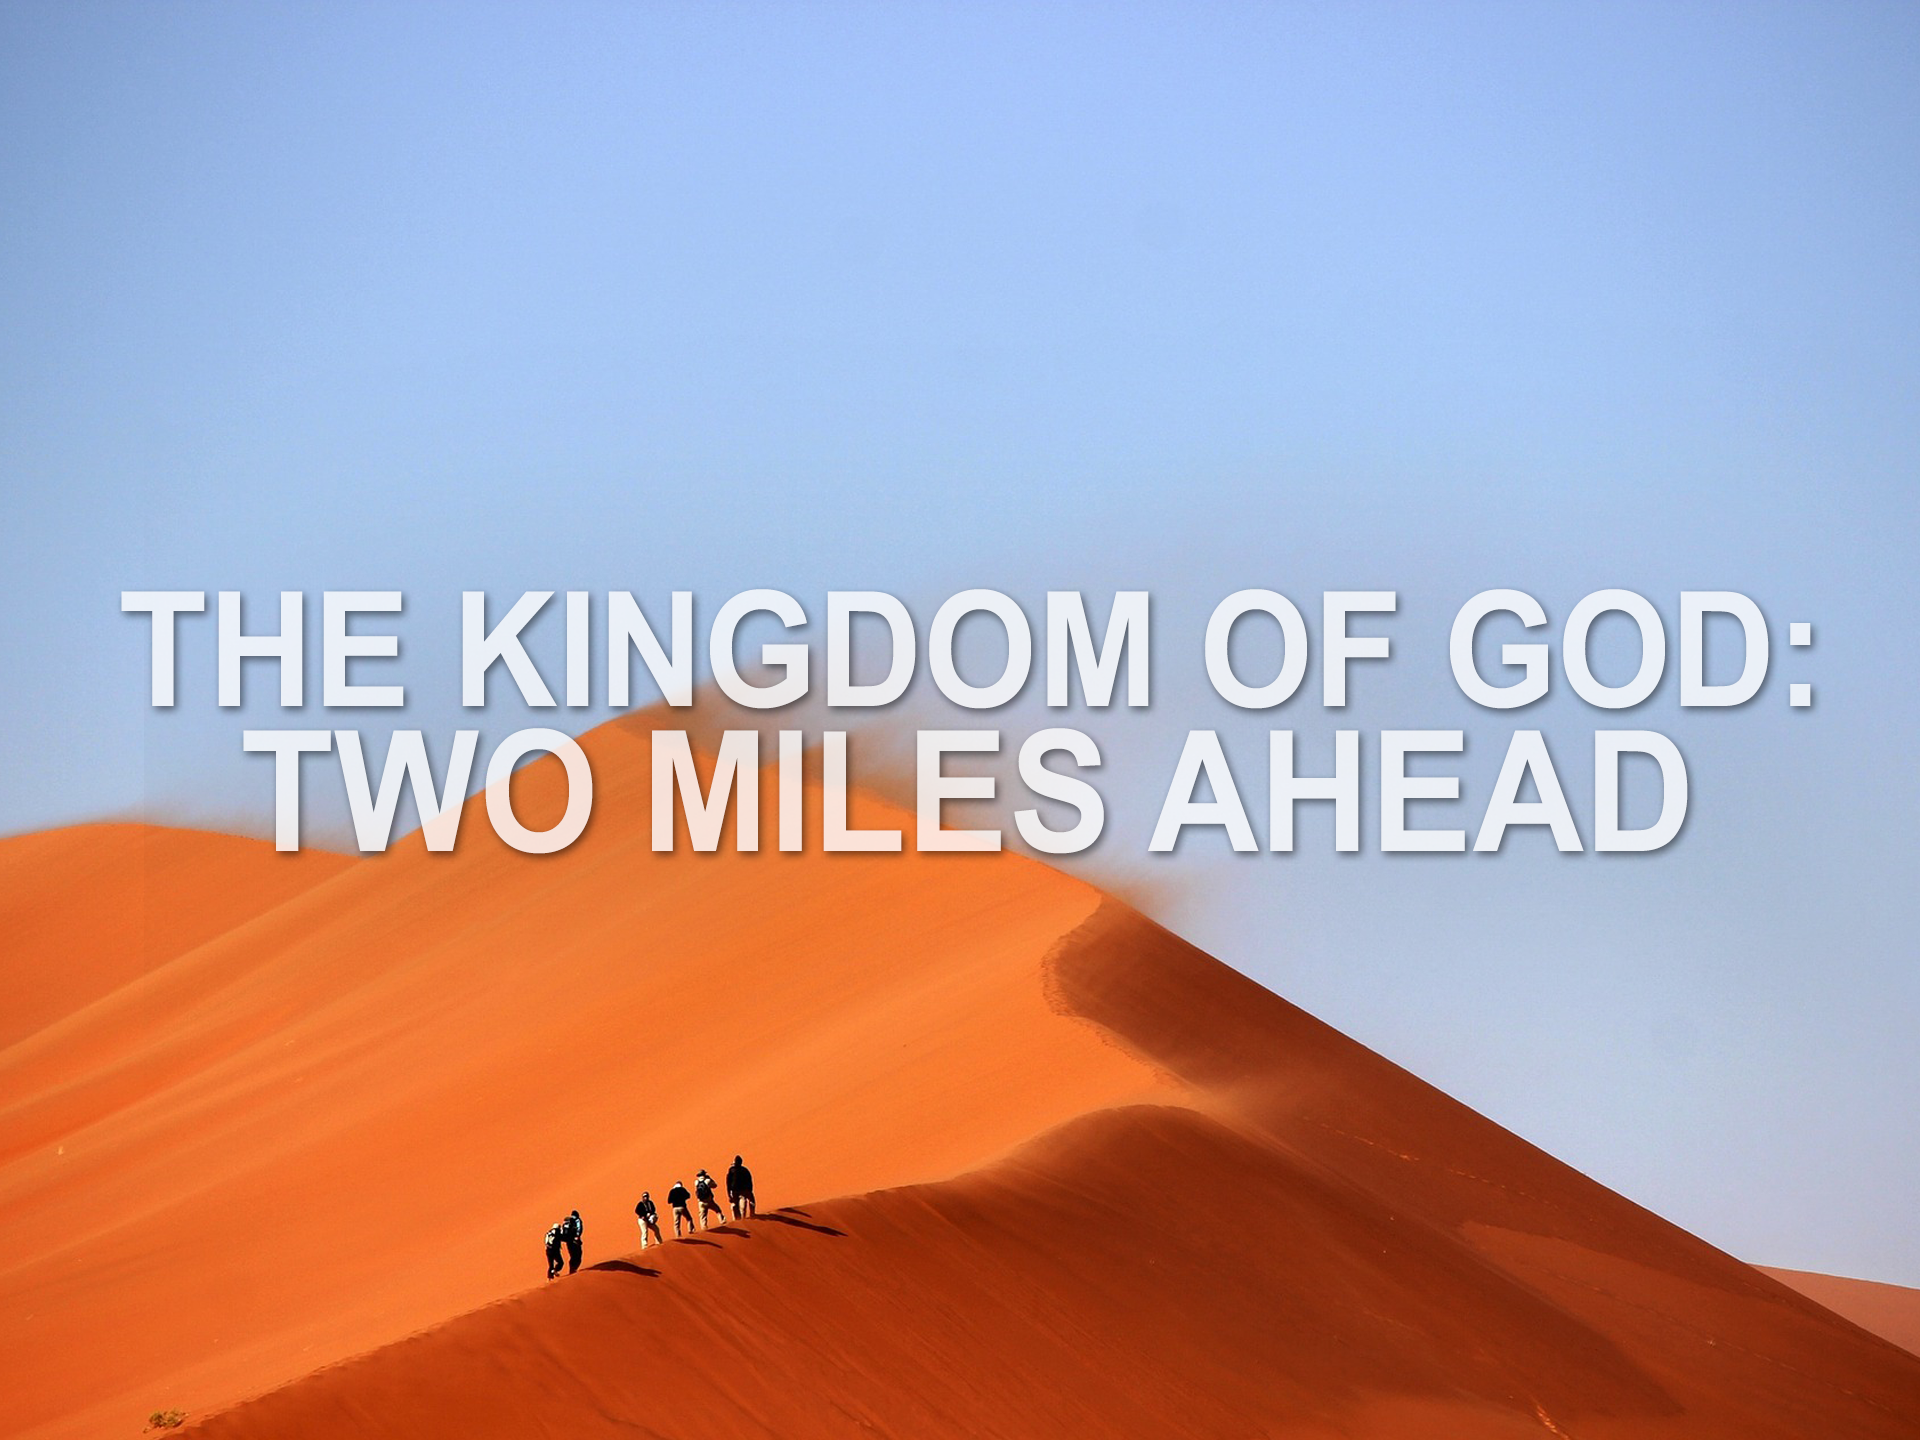 072819 the kingdom of god two miles ahead.png